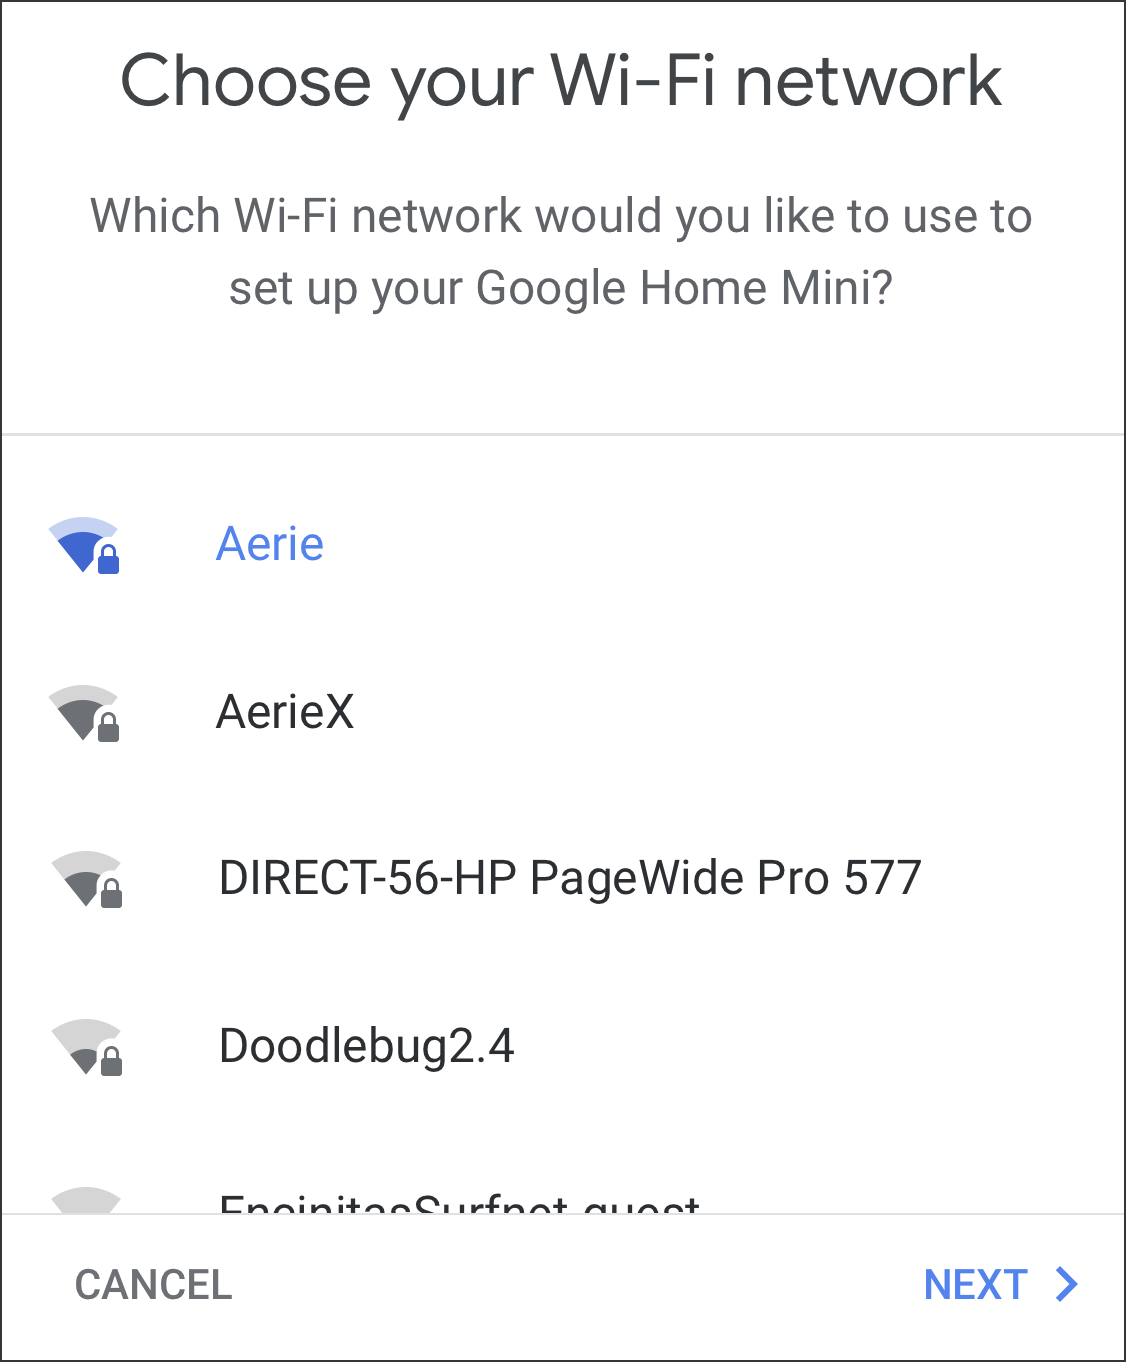 google home mini - connect to which wifi network